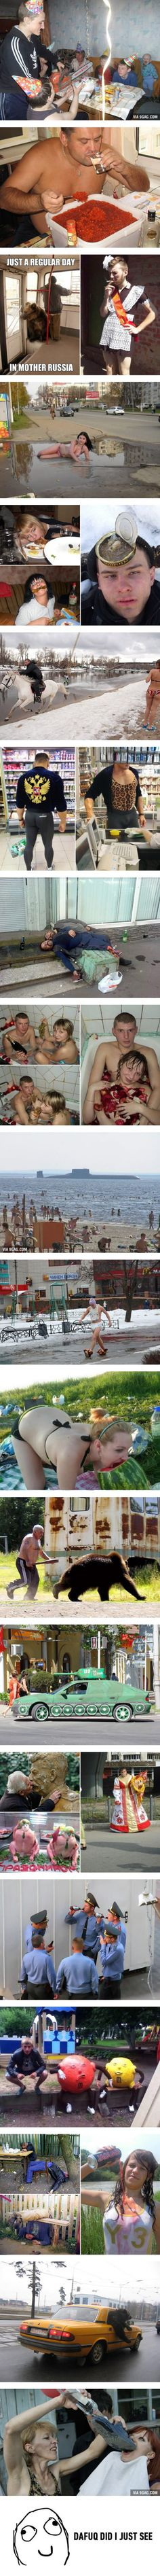 "Just a ""Normal"" day in Russia..."